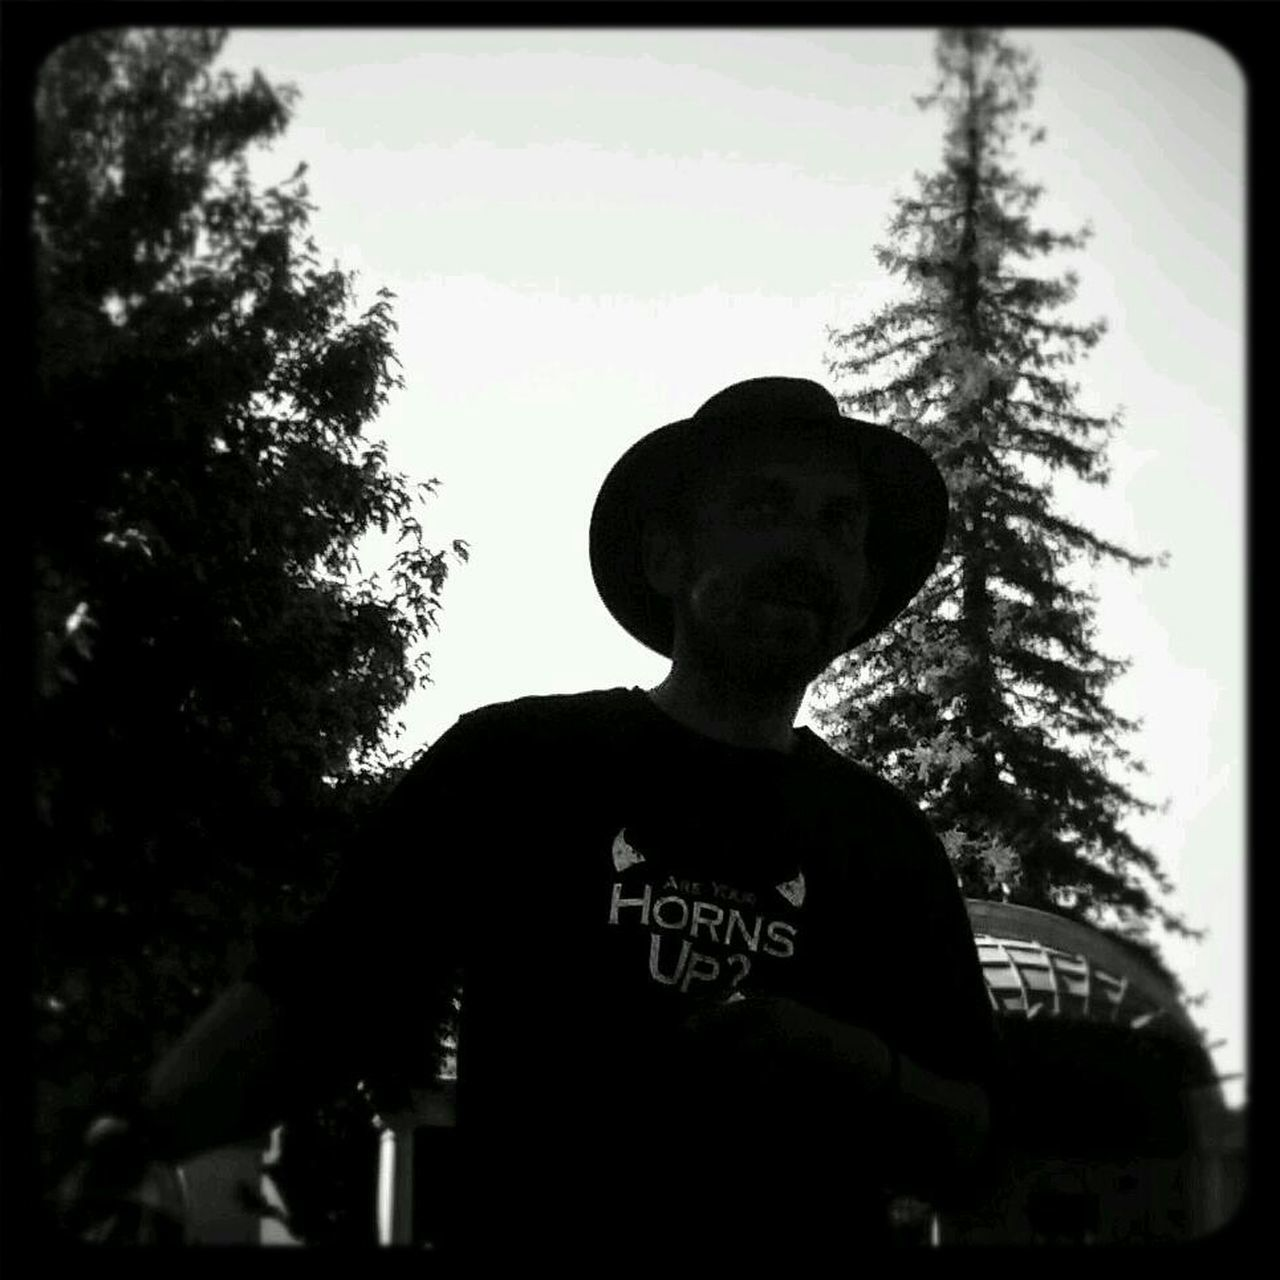 My husband Love ♥ Ehemann ♥ Silhouette Gunslinger  #blackandwhite